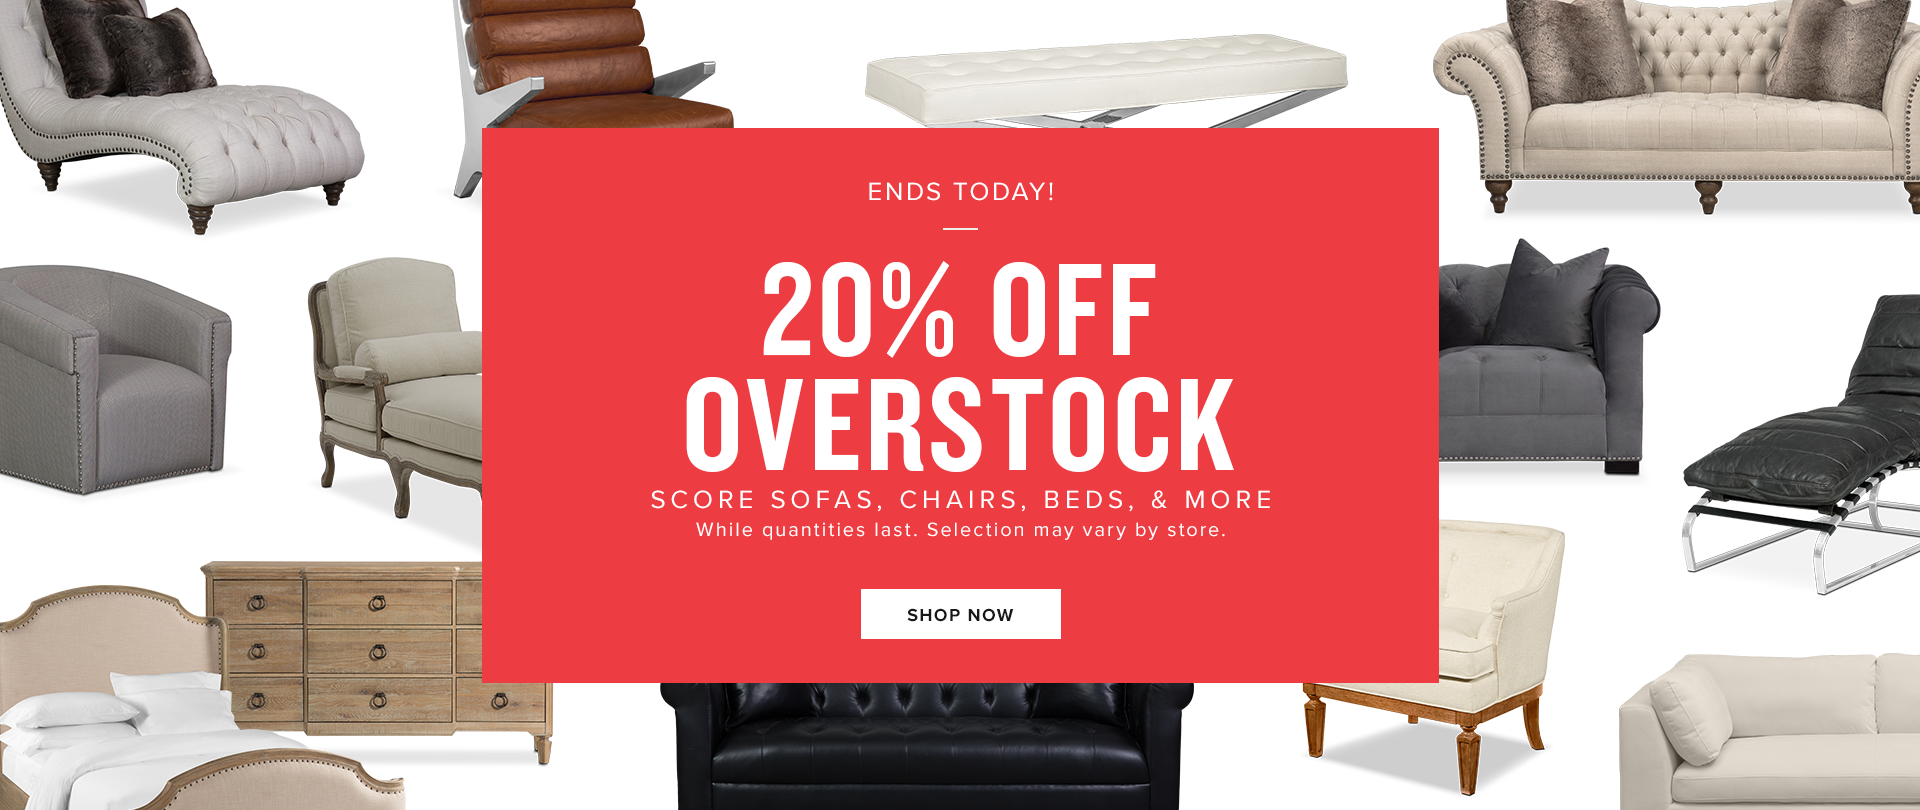 ends today! 20% off overstock. shop now.